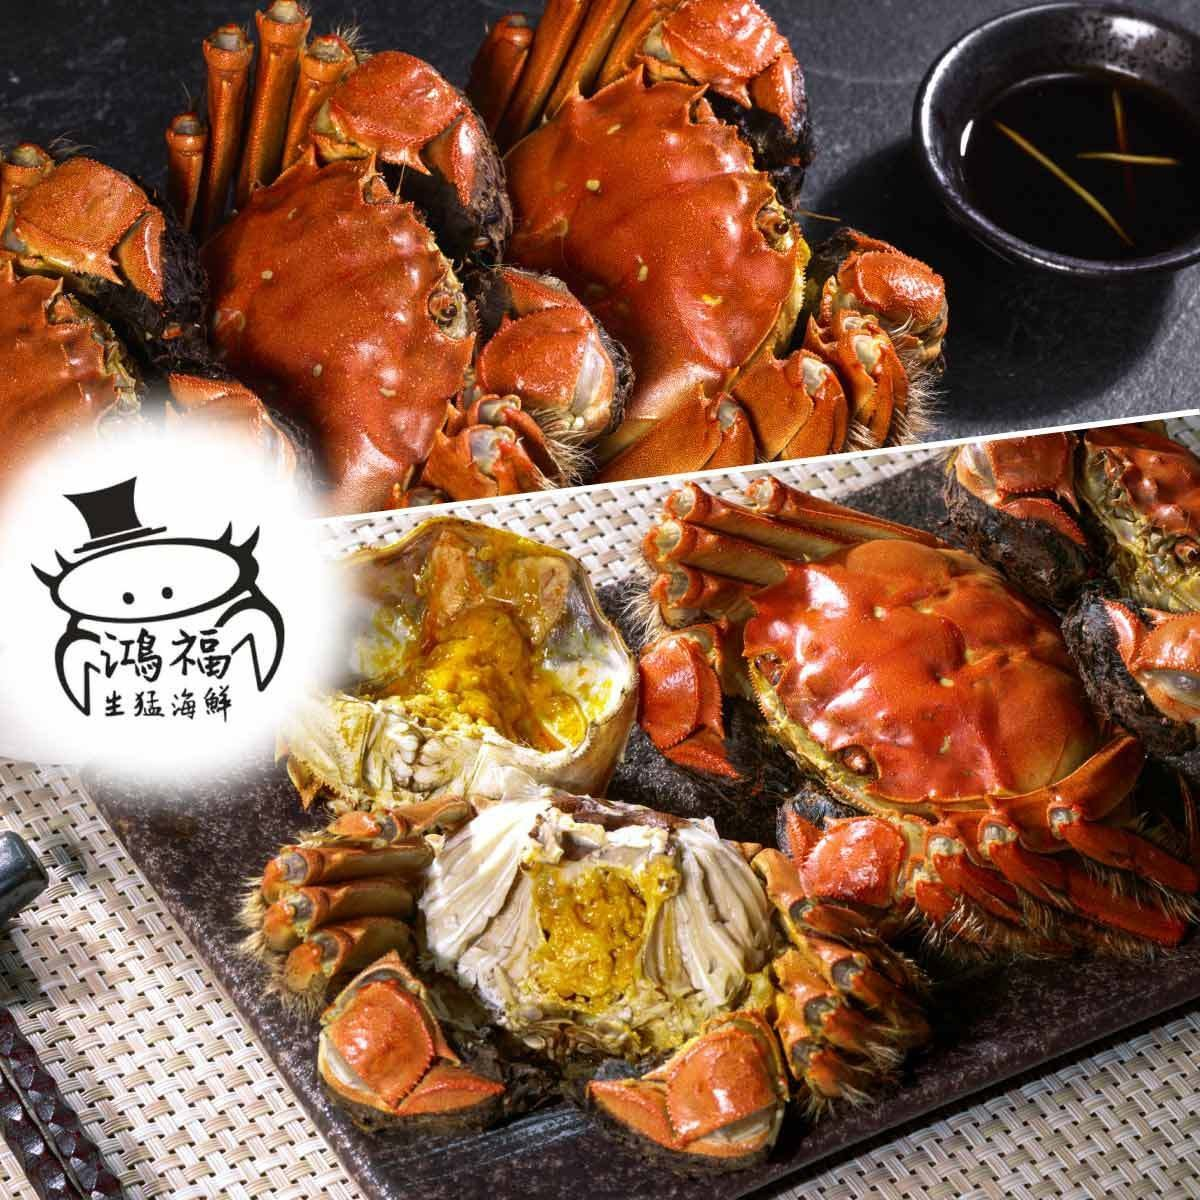 10 Units (Female, Extra Large, approx. 4.7 - 5.2 taels) - Chinese Hairy Crab【Merchant Delivery Only】